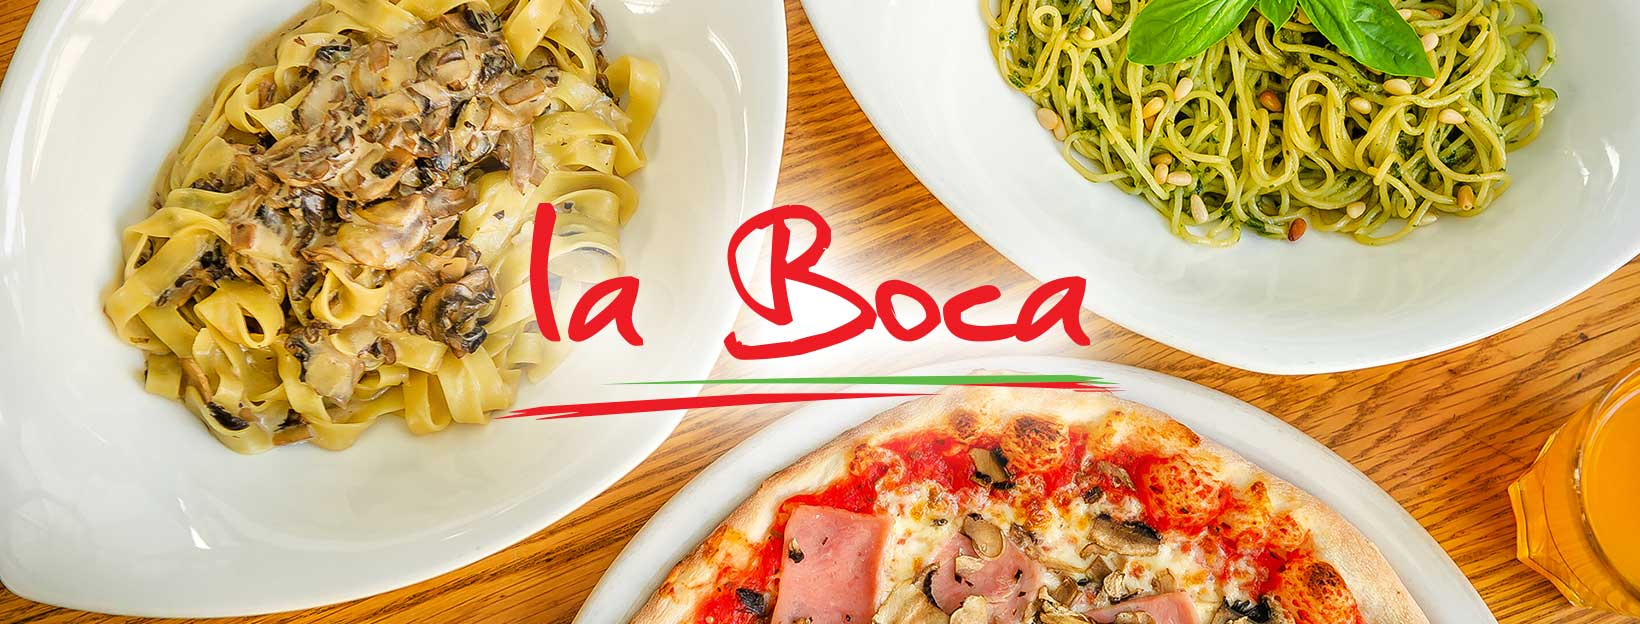 A photo of a variety of pasta and pizza available from La Boca